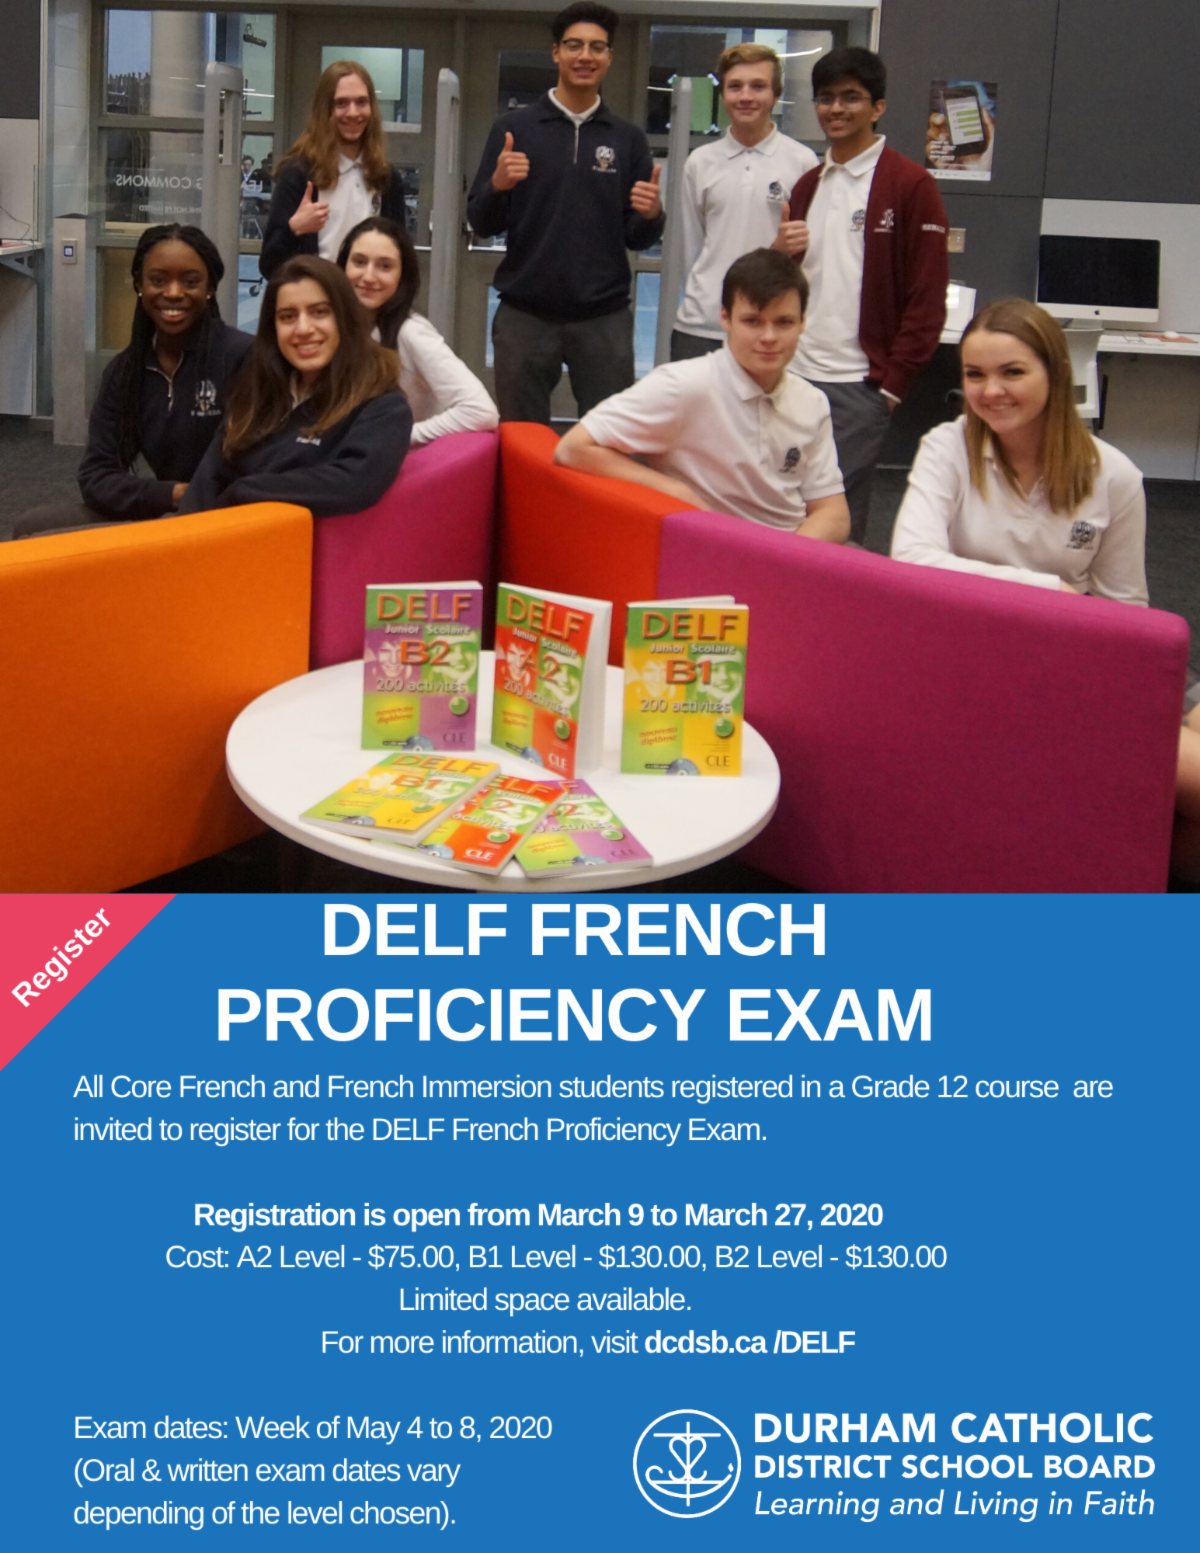 Registration for the DELF Proficiency Exam opens on March 9, 2020. Limited space available. Register at dcdsb.ca/DELF